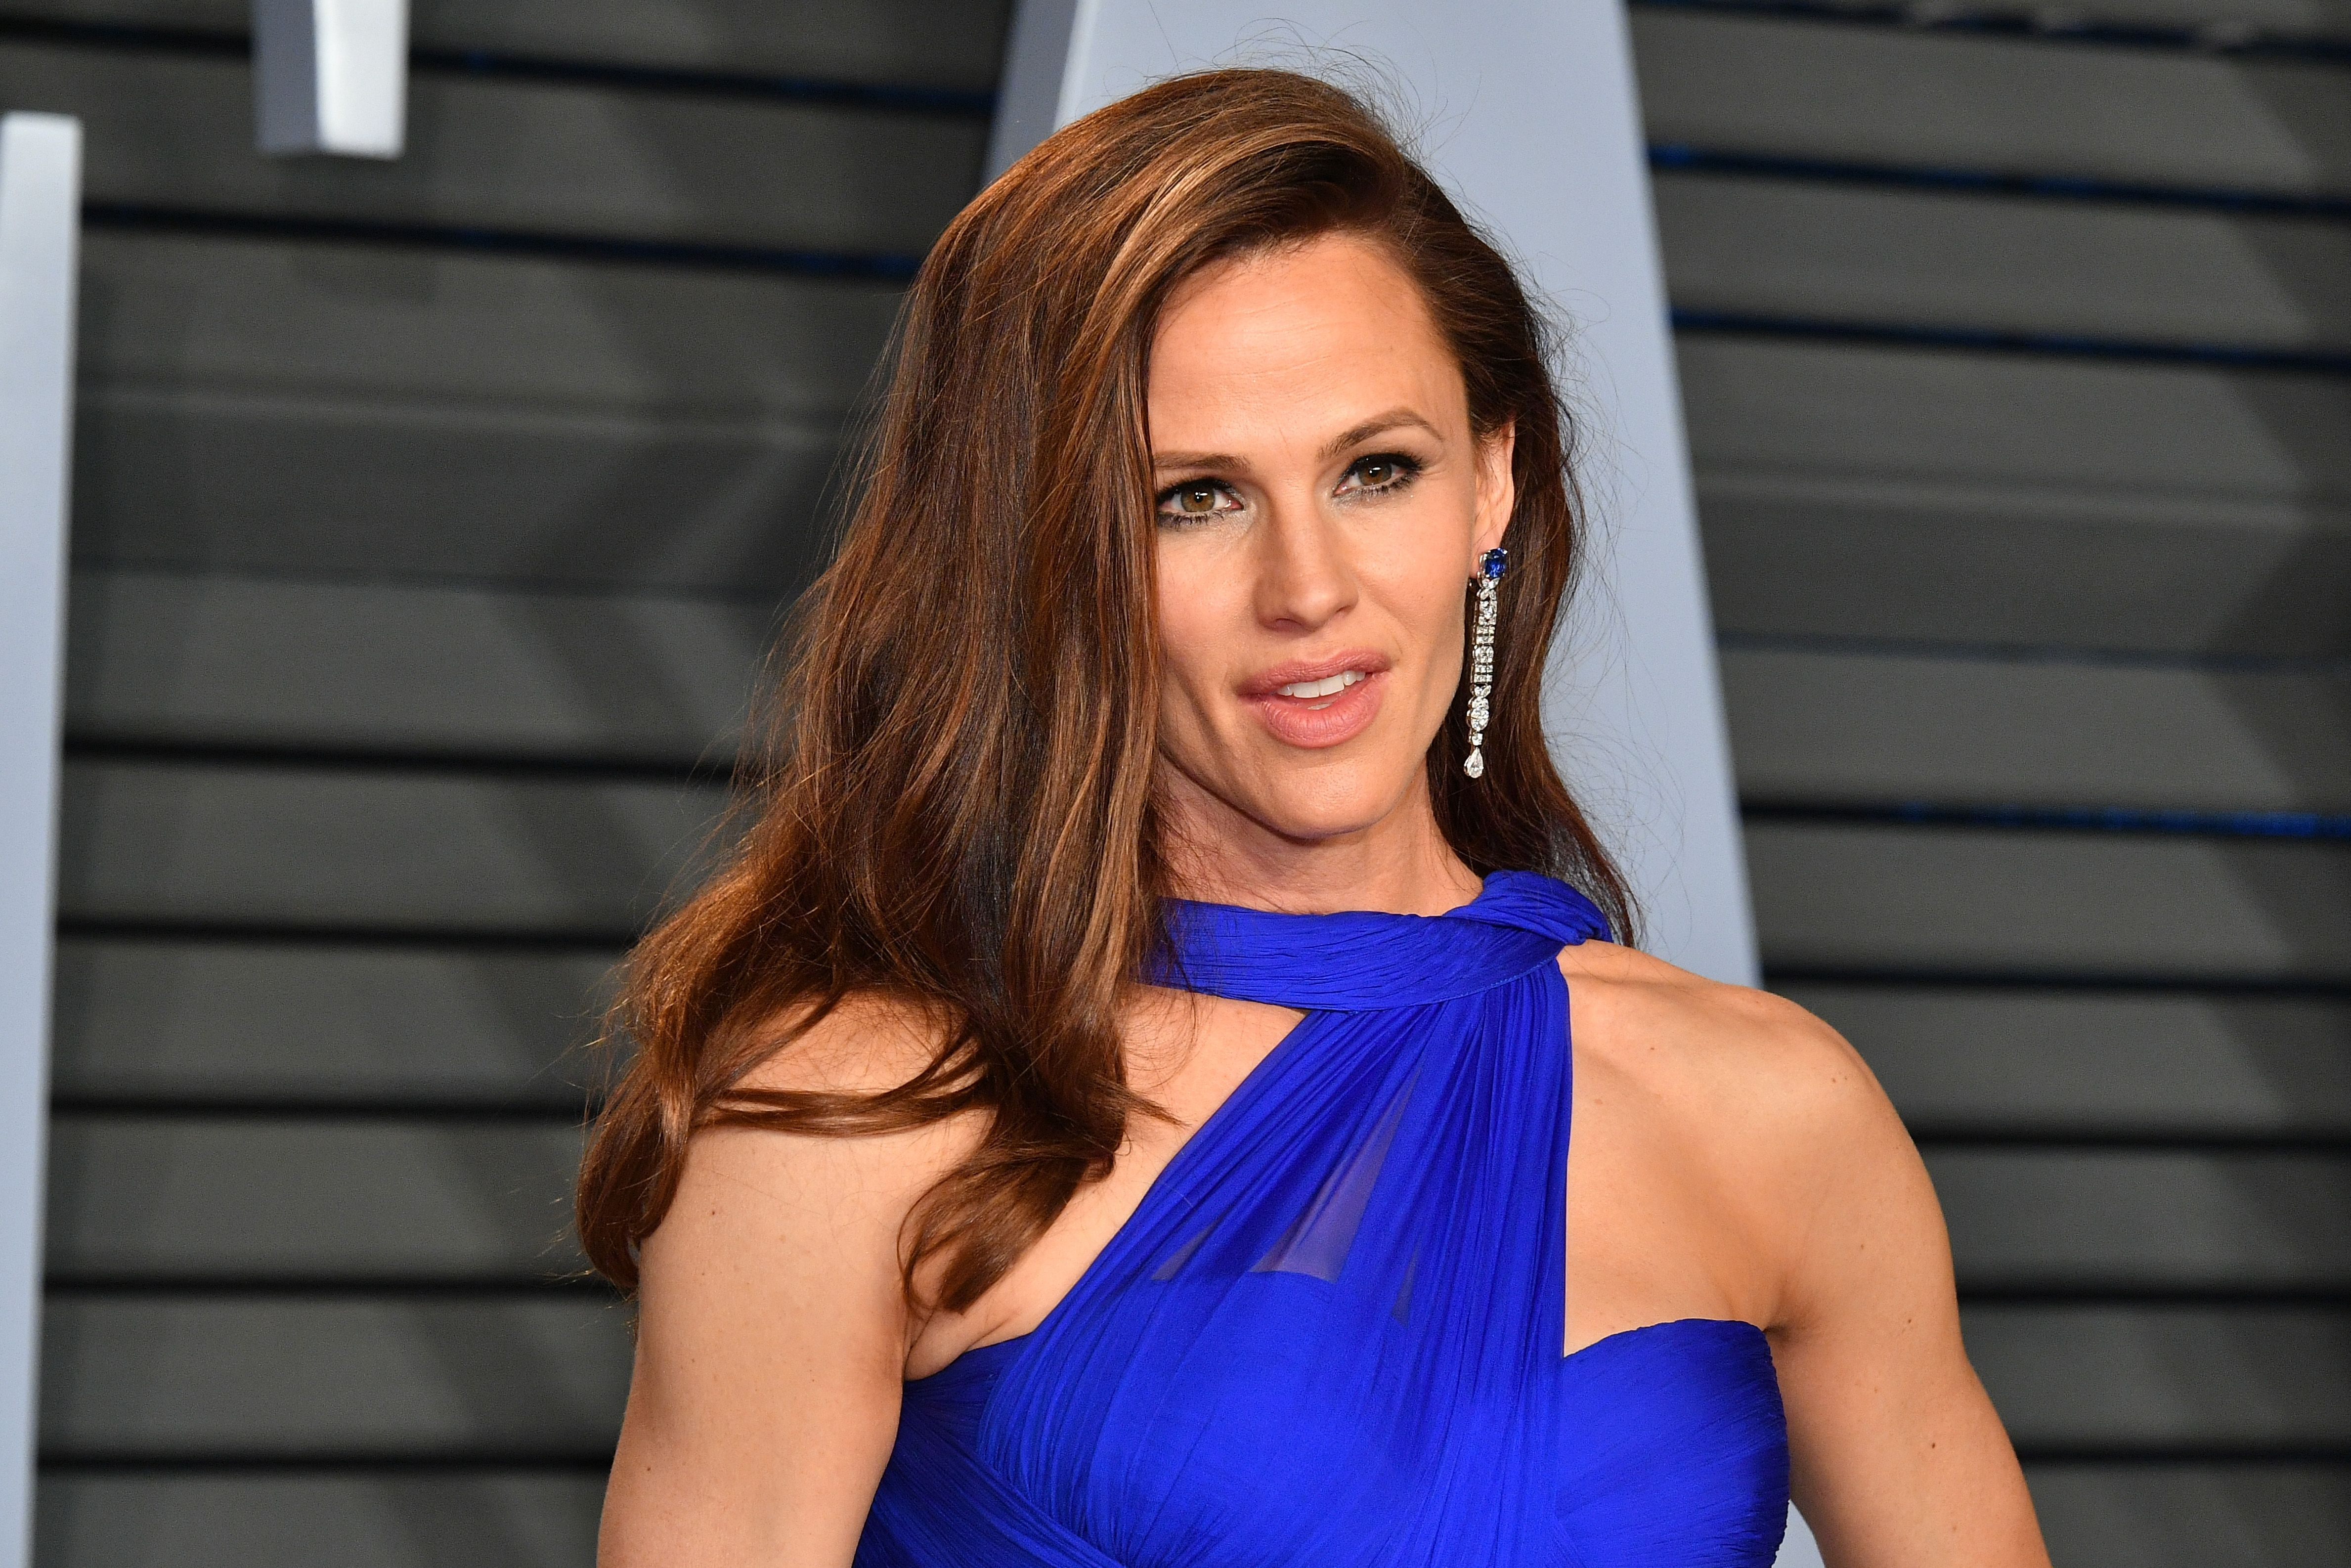 Jennifer Garner at the 2018 Vanity Fair Oscar Party hosted by Radhika Jones at Wallis Annenberg Center for the Performing Arts on March 4, 2018   Photo: Getty Images